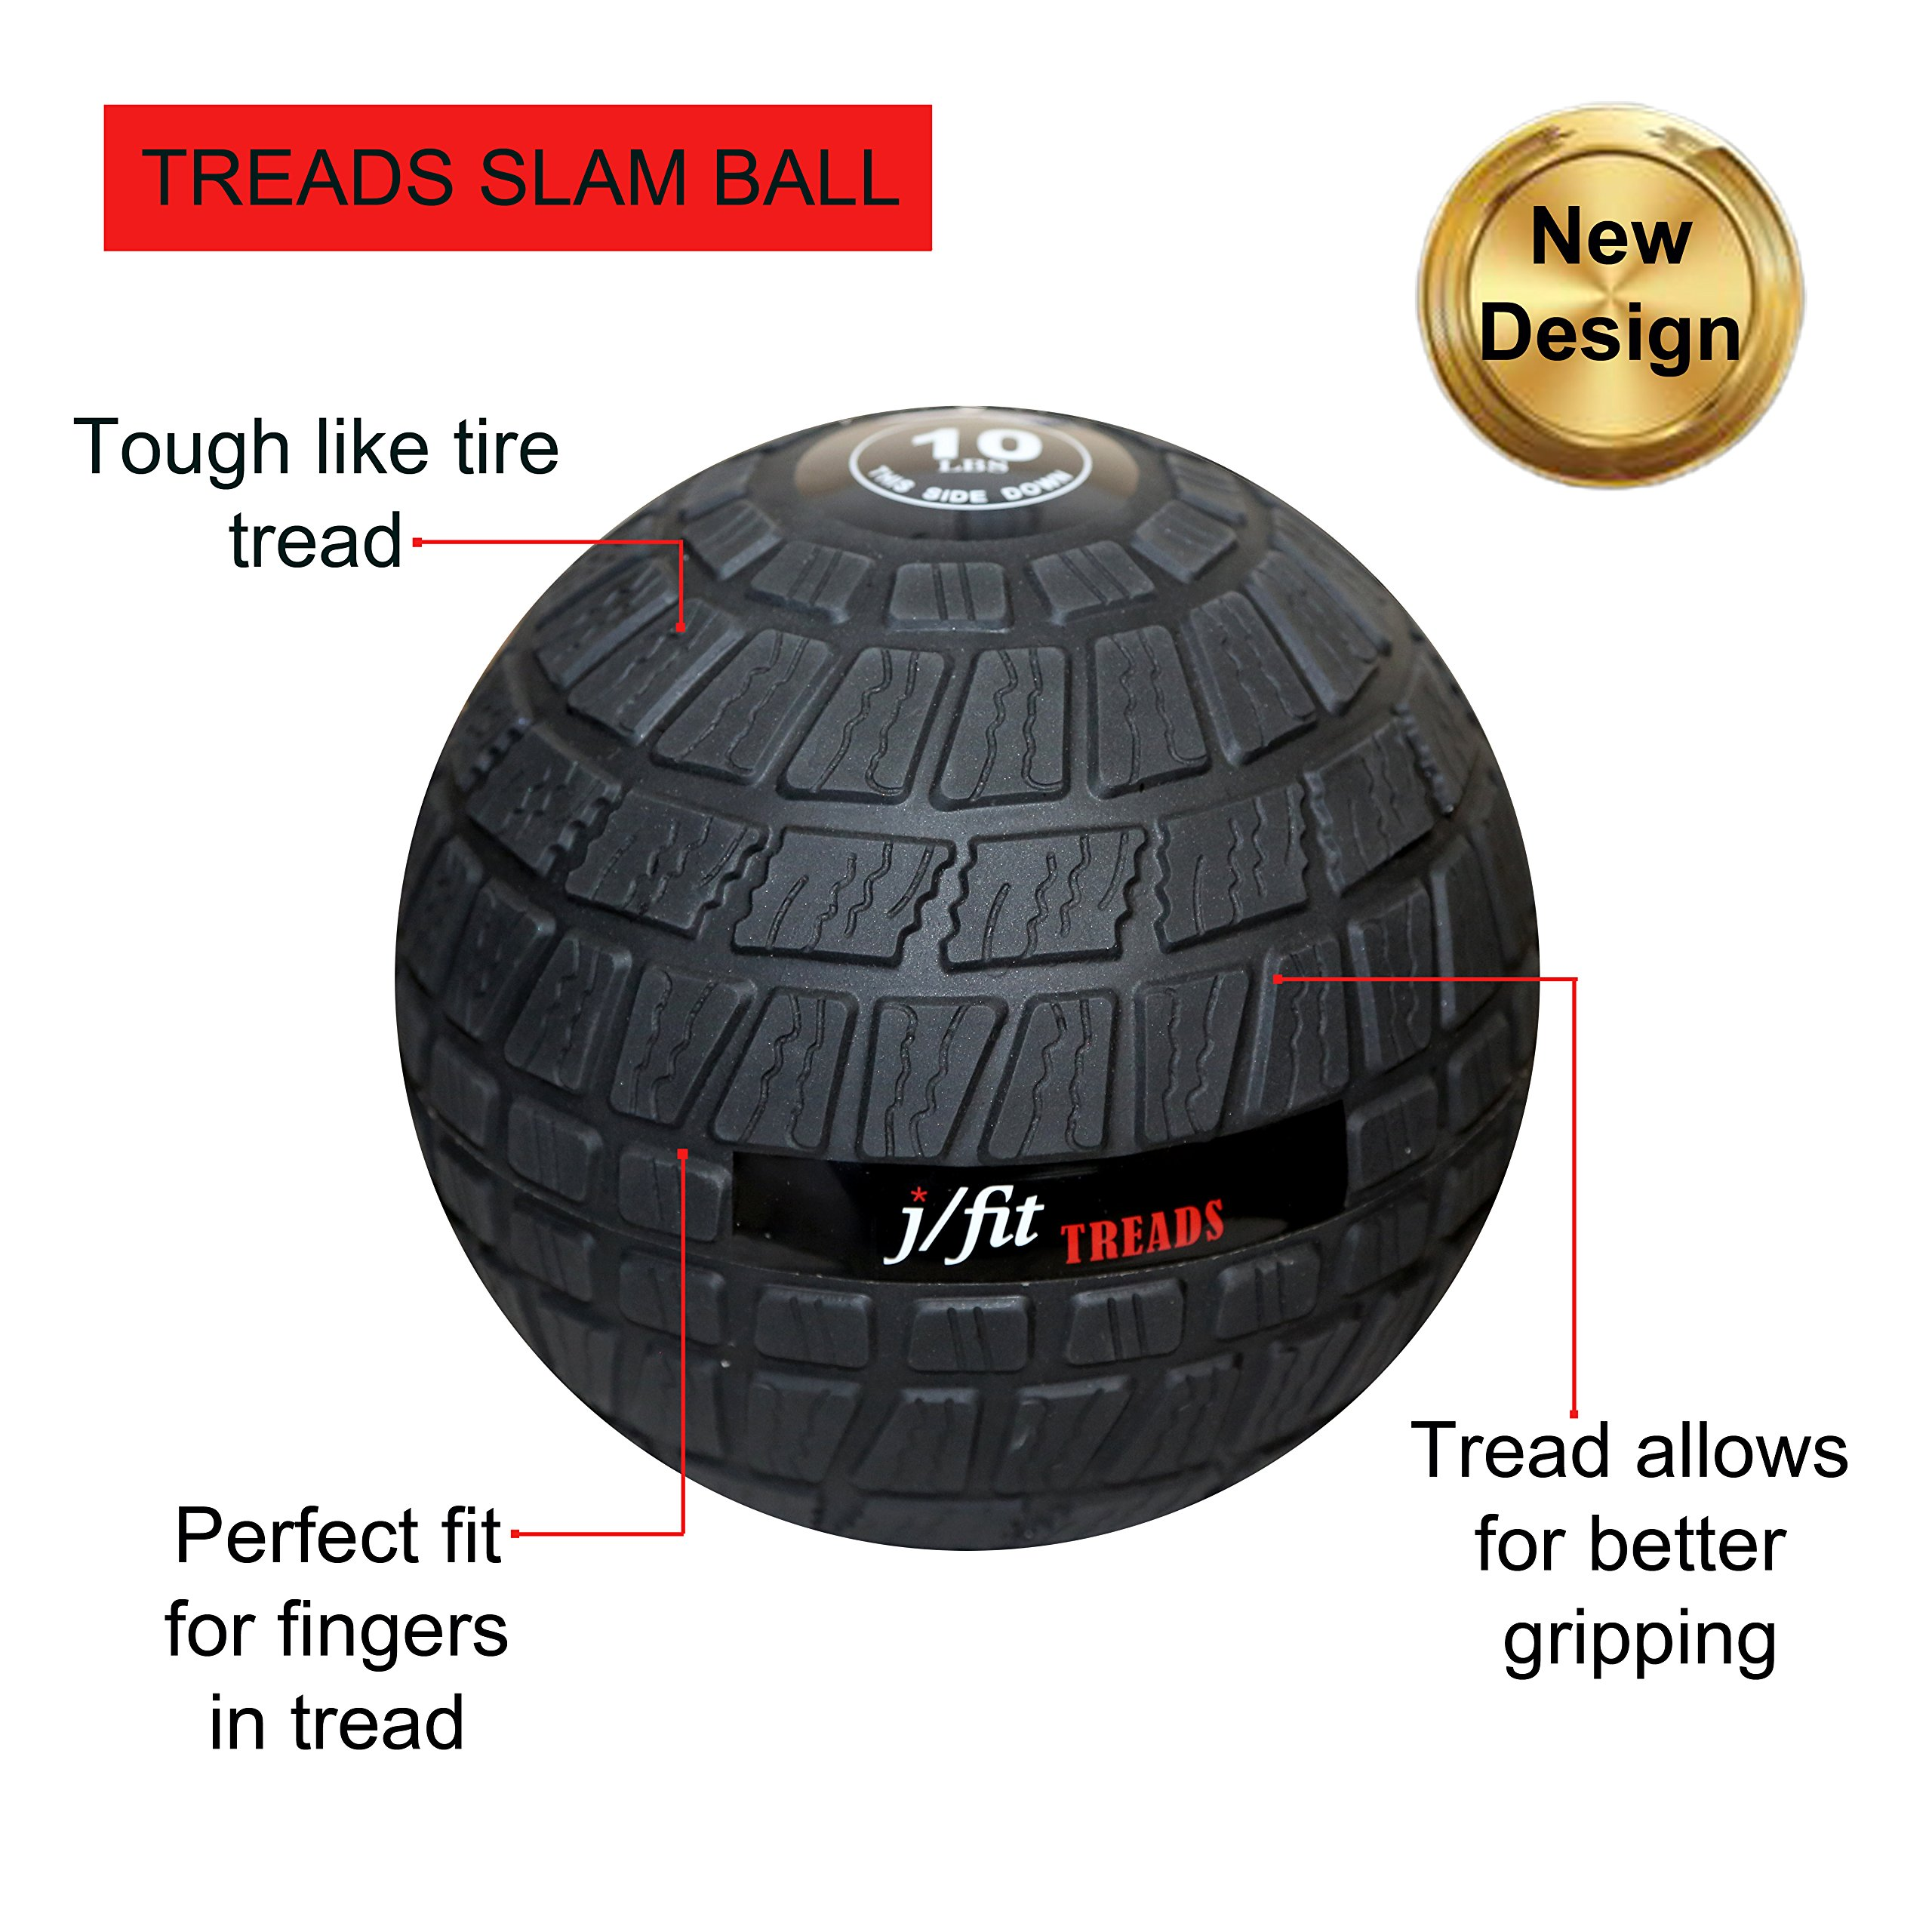 j/fit TREADS Dead Weight Slam Ball with Easy-Grip Textured Surface, 45 lb by j/fit (Image #3)